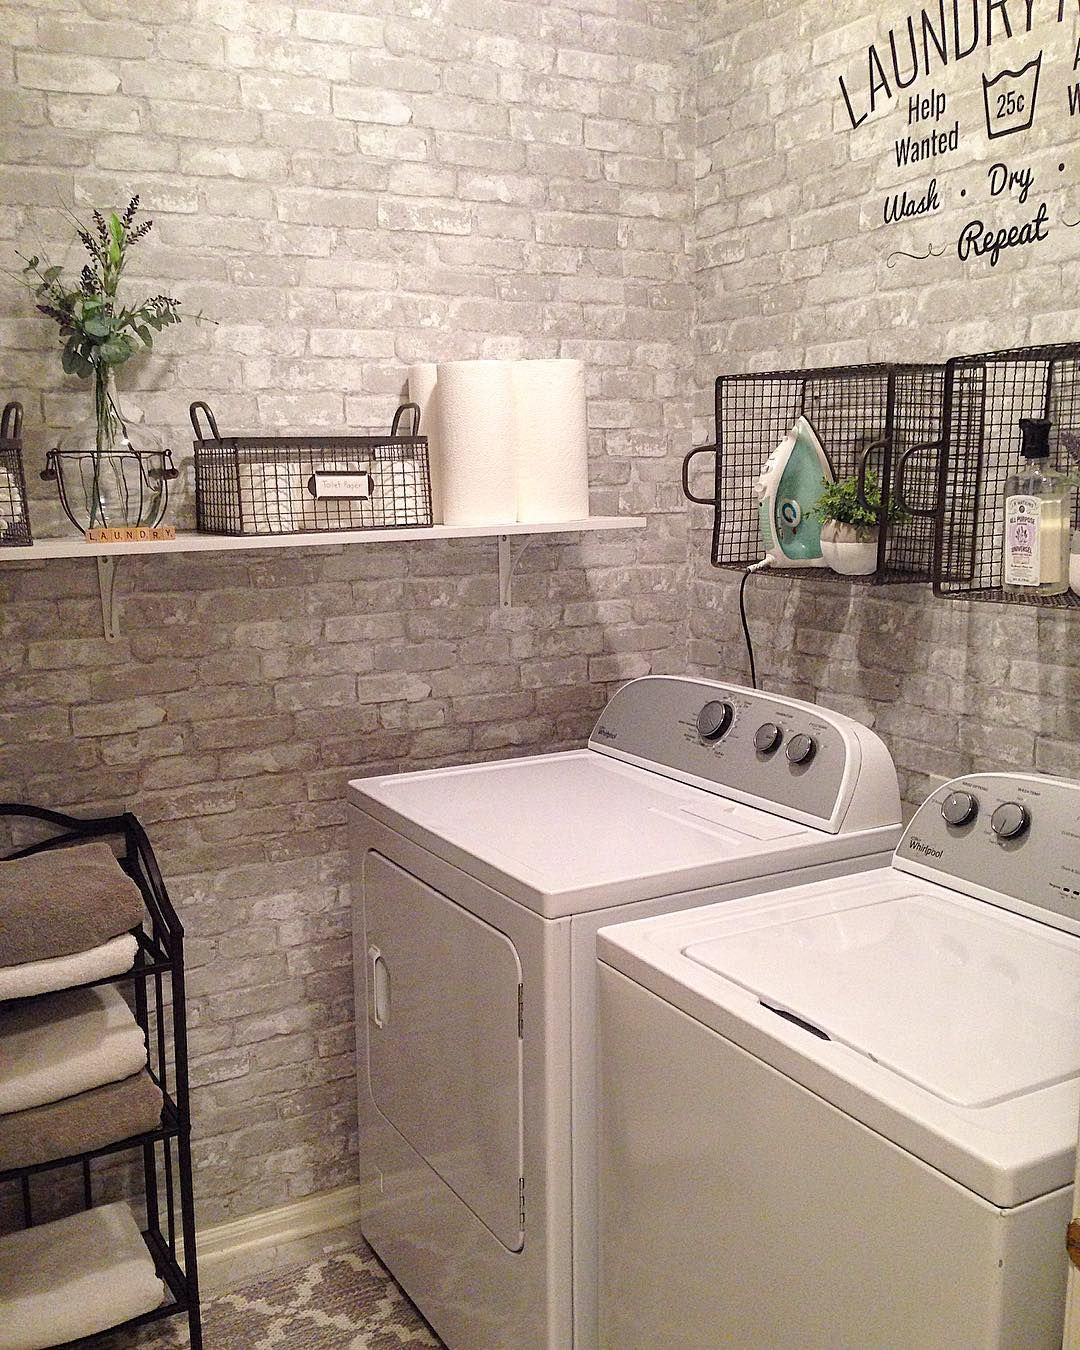 Laundry Room Wallpaper Adorable 15 Basement Reconstruction And Remodeling Ideas Budget Friendly Decorating Inspiration